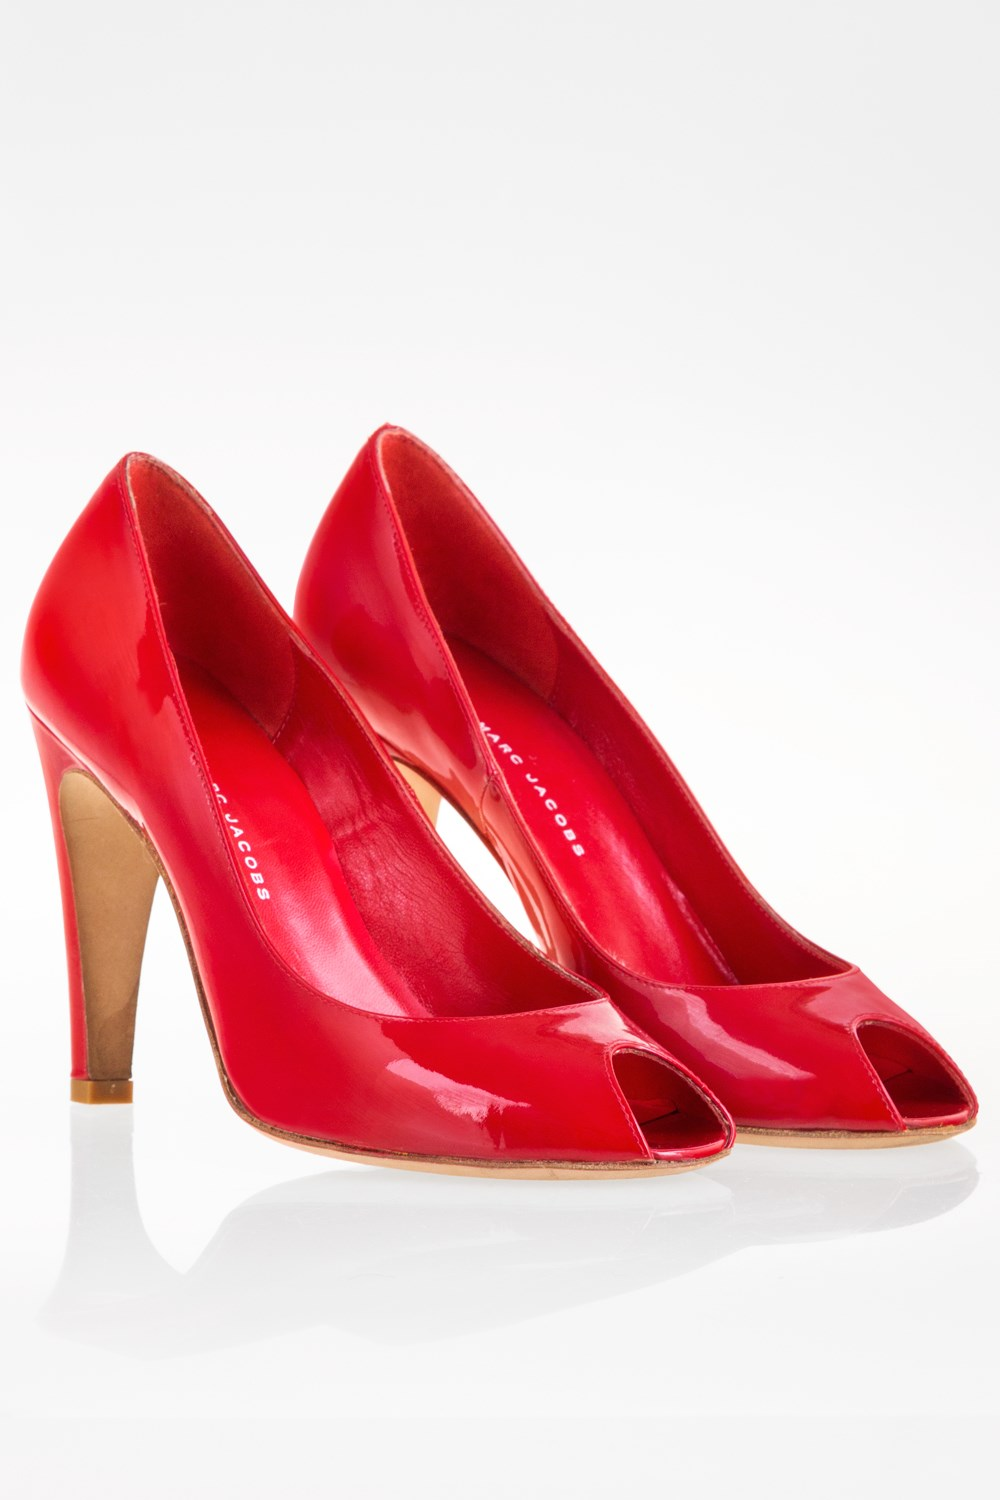 32a0ea2e4245 Red Patent Leather Peep-Toe Pumps   Size  38 - Fit  37